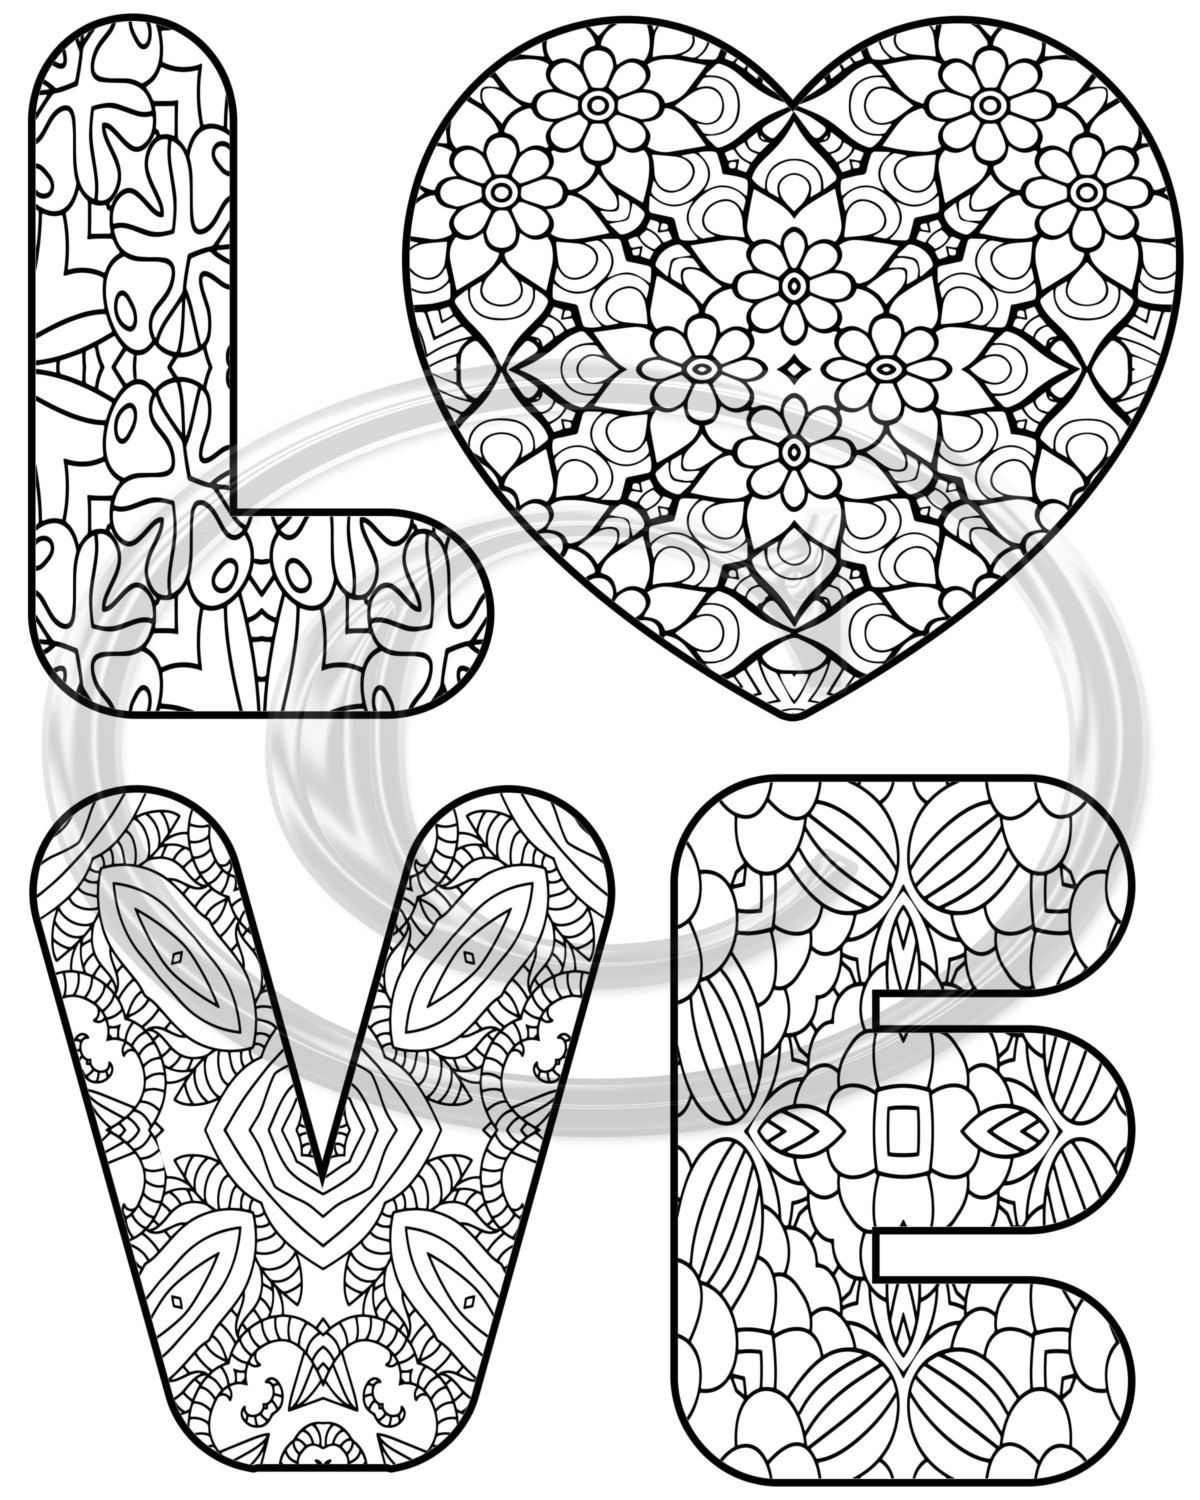 Love coloring page printable instant download  Love coloring